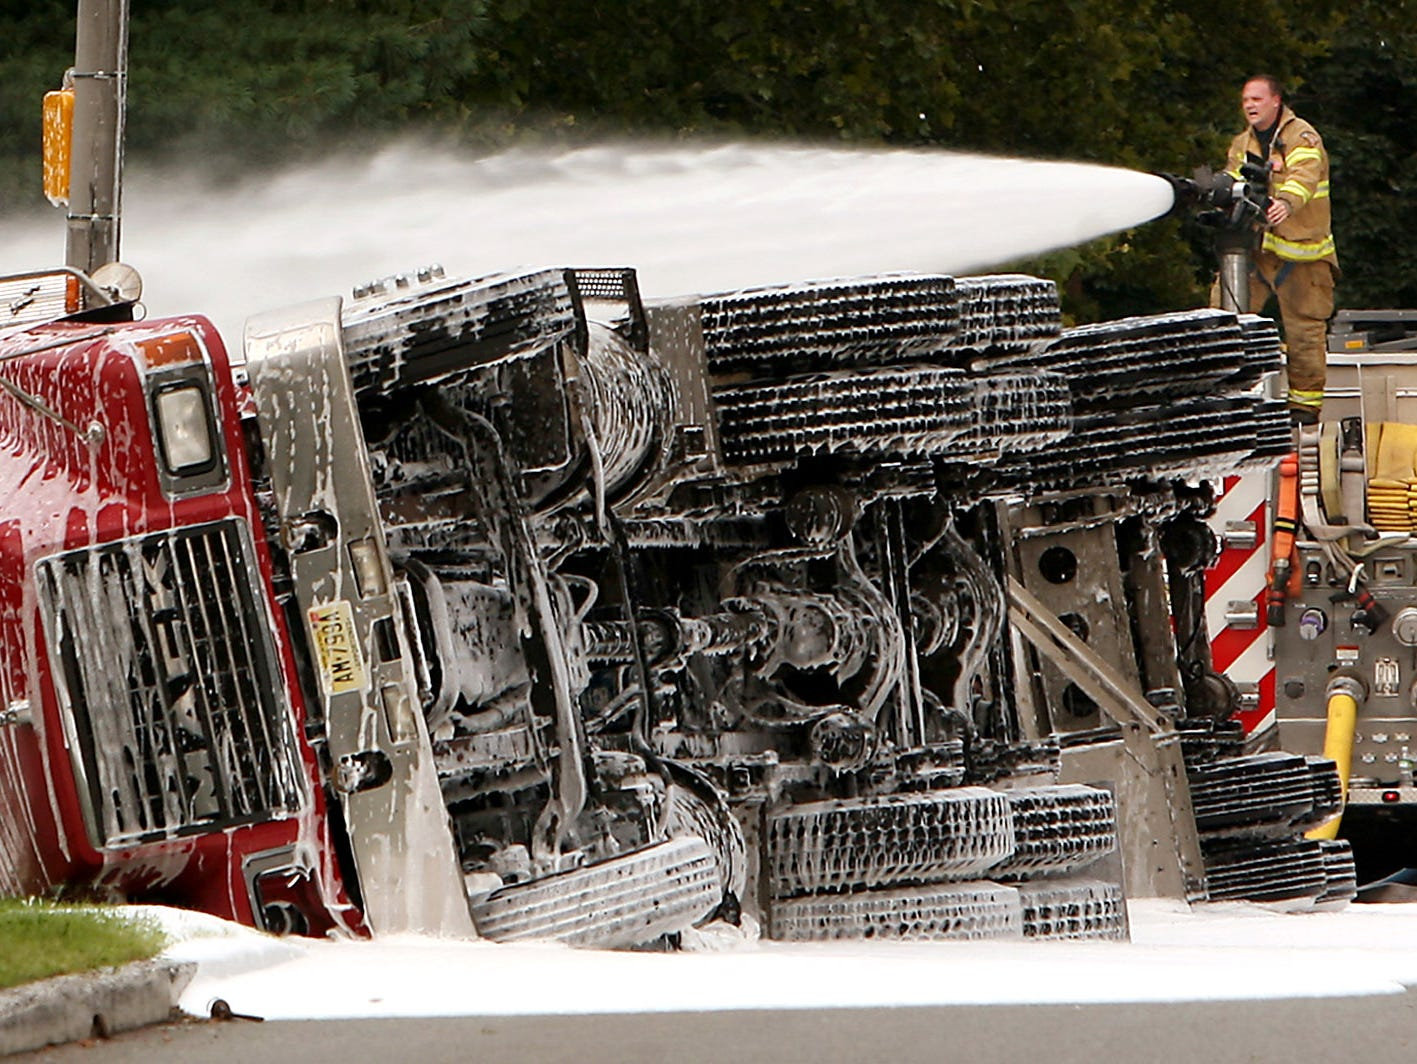 A firefighter sprays foam around an overturned gasoline tanker. August 5, 2009, Morristown, NJ